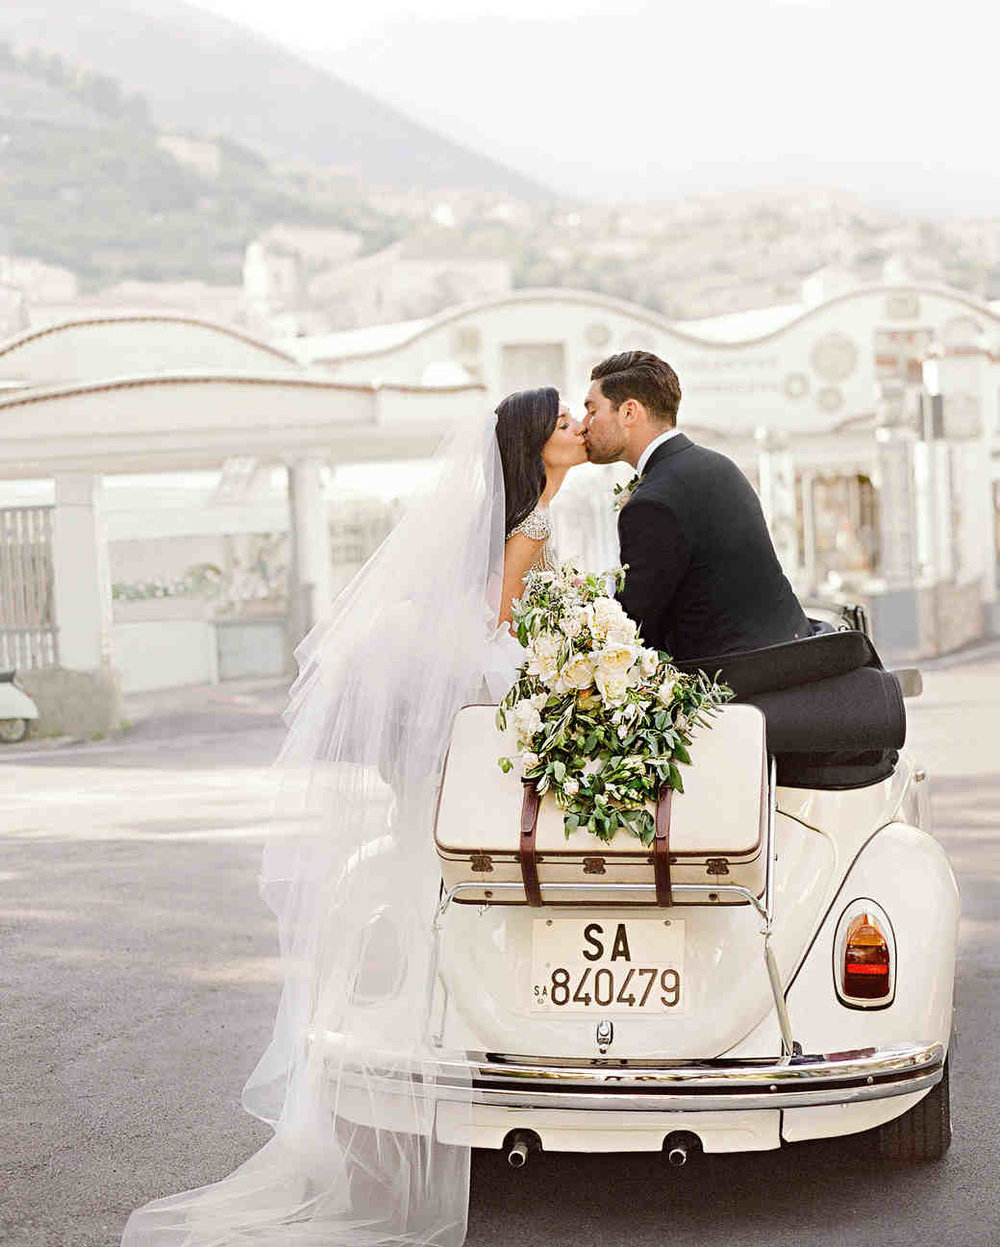 couple-wedding-kissing-car-italy-103351309_vert.jpg